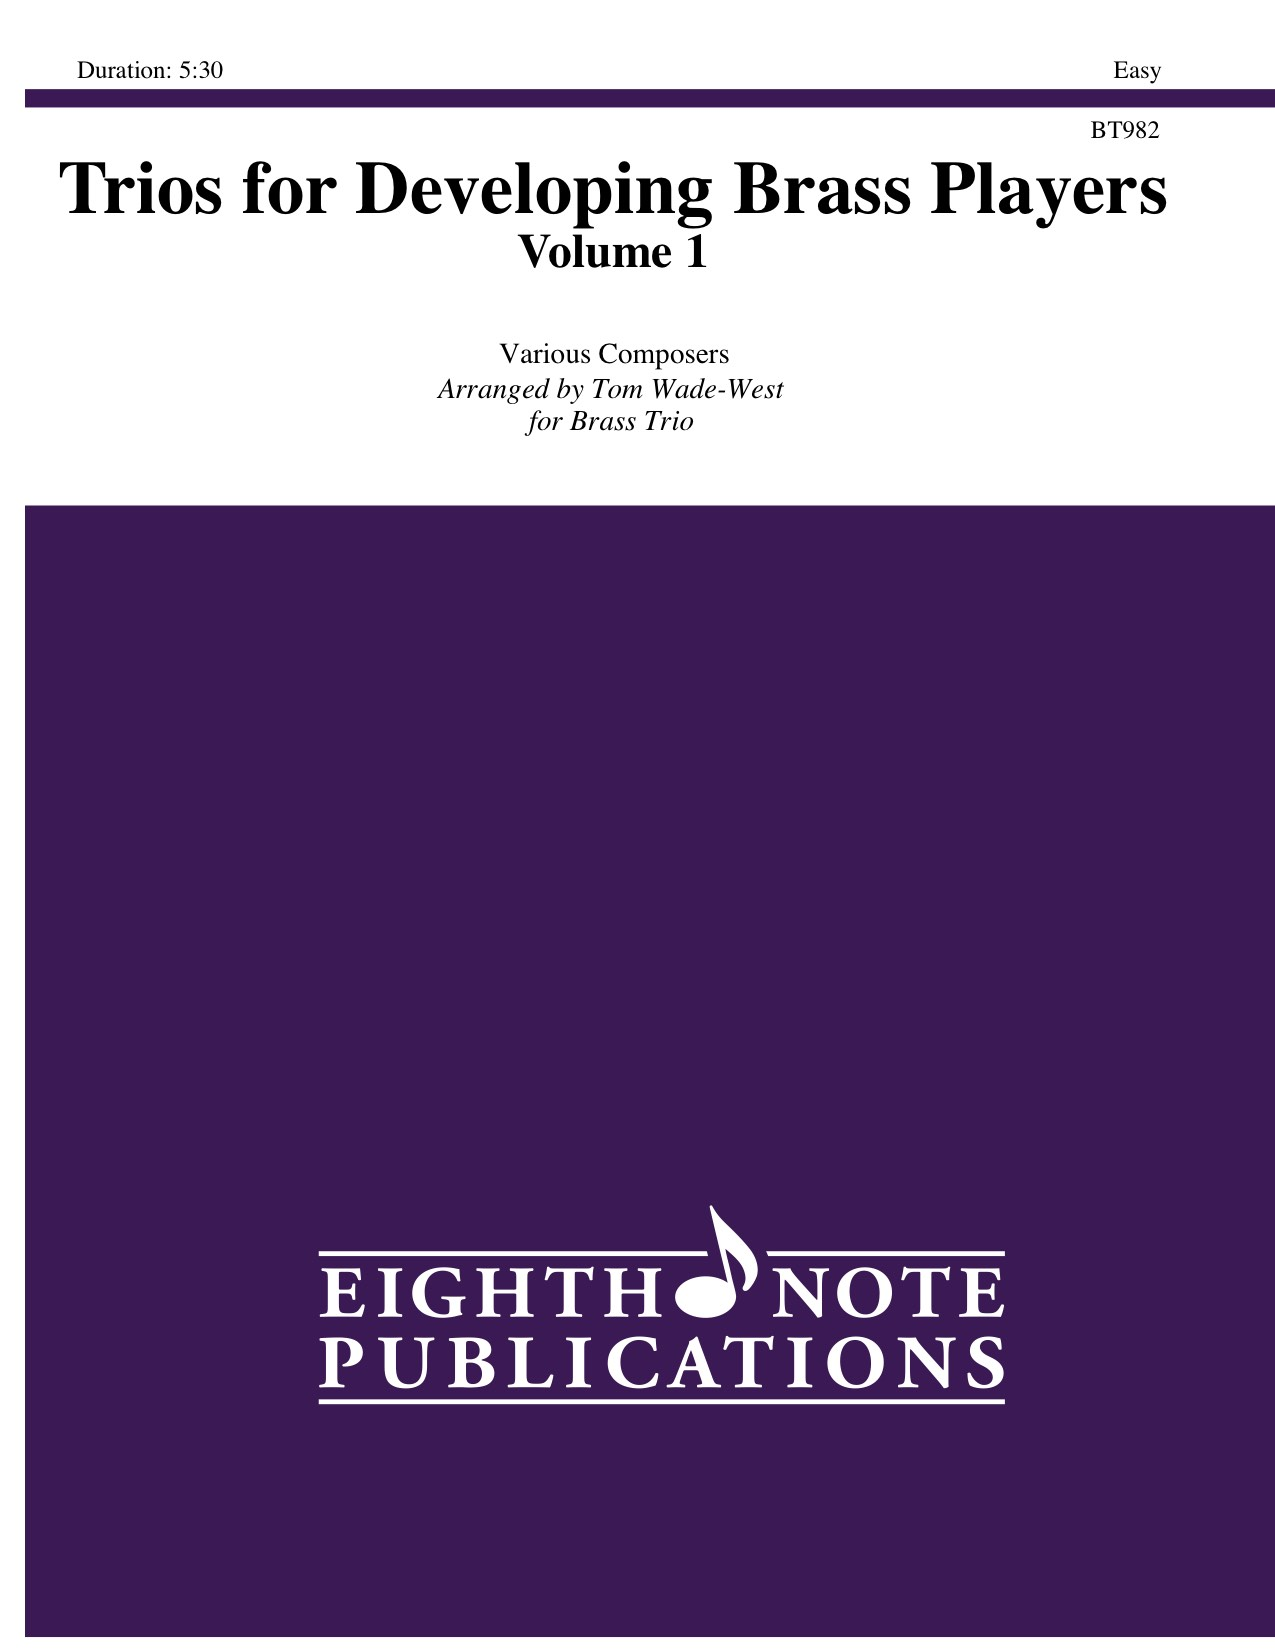 Trios for Developing Brass Players - Volume 1 -  Various